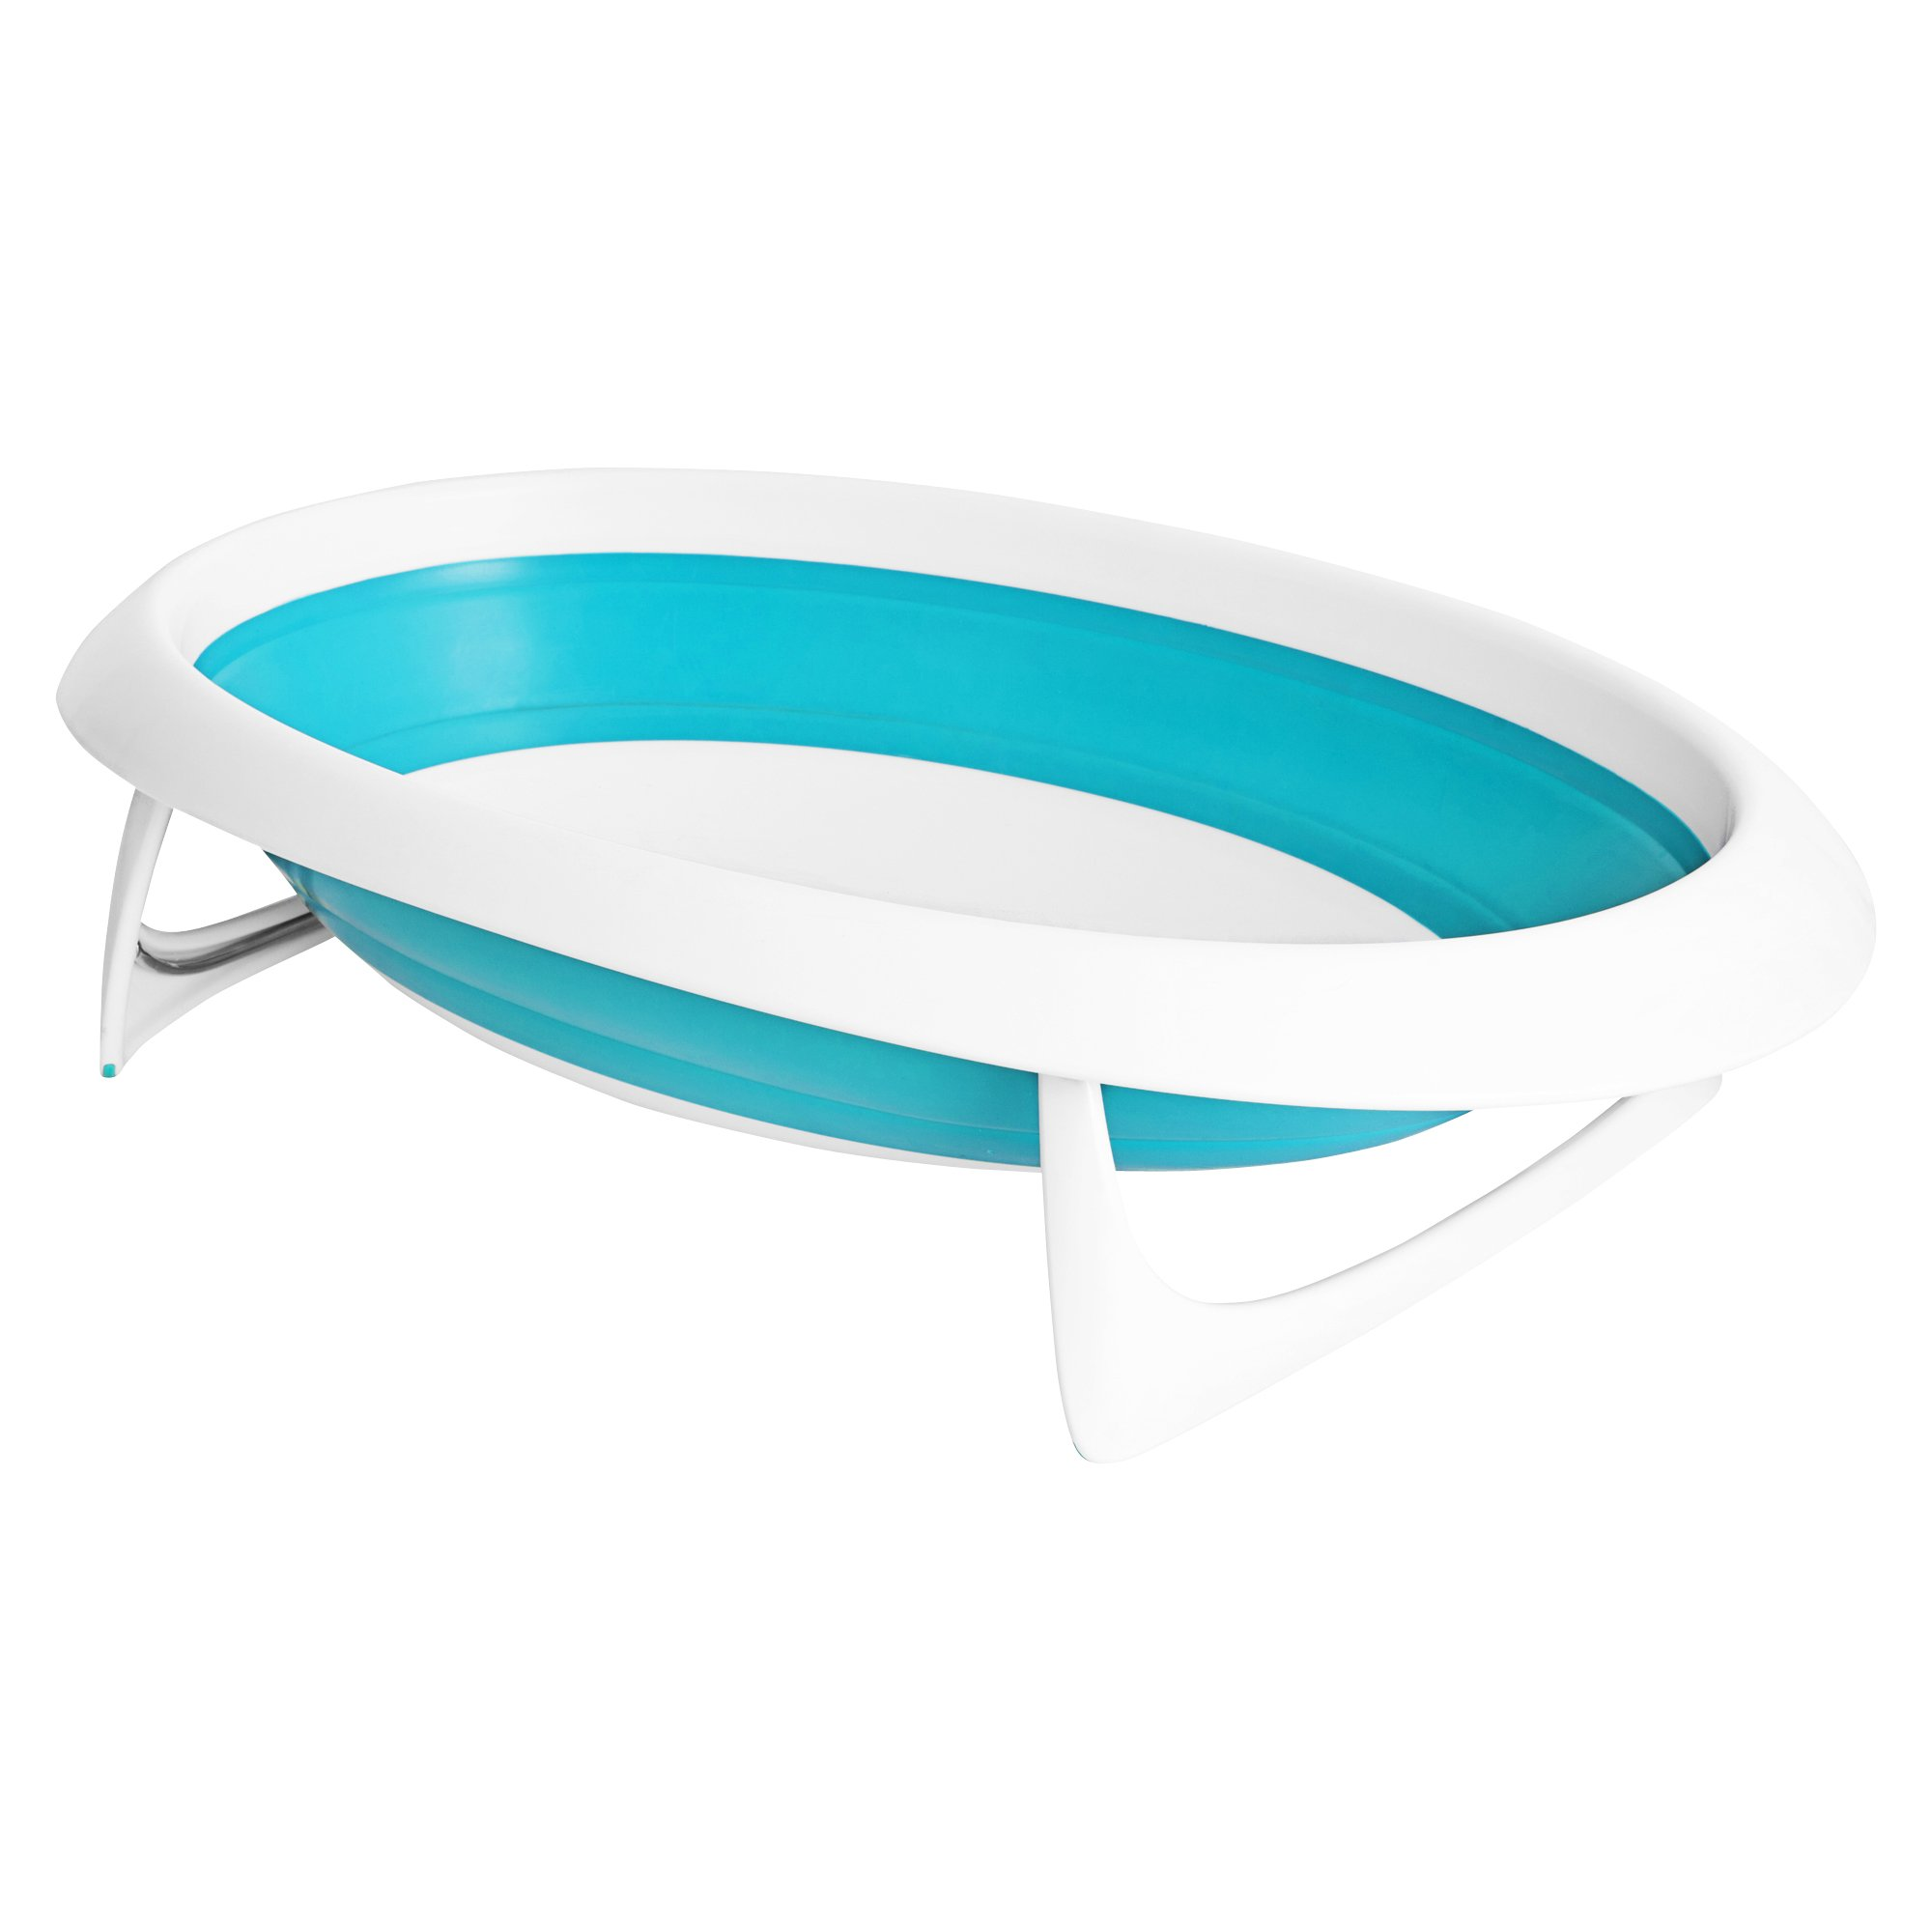 Boon Naked Collapsible Baby Bathtub Blue,Blue/White by Boon